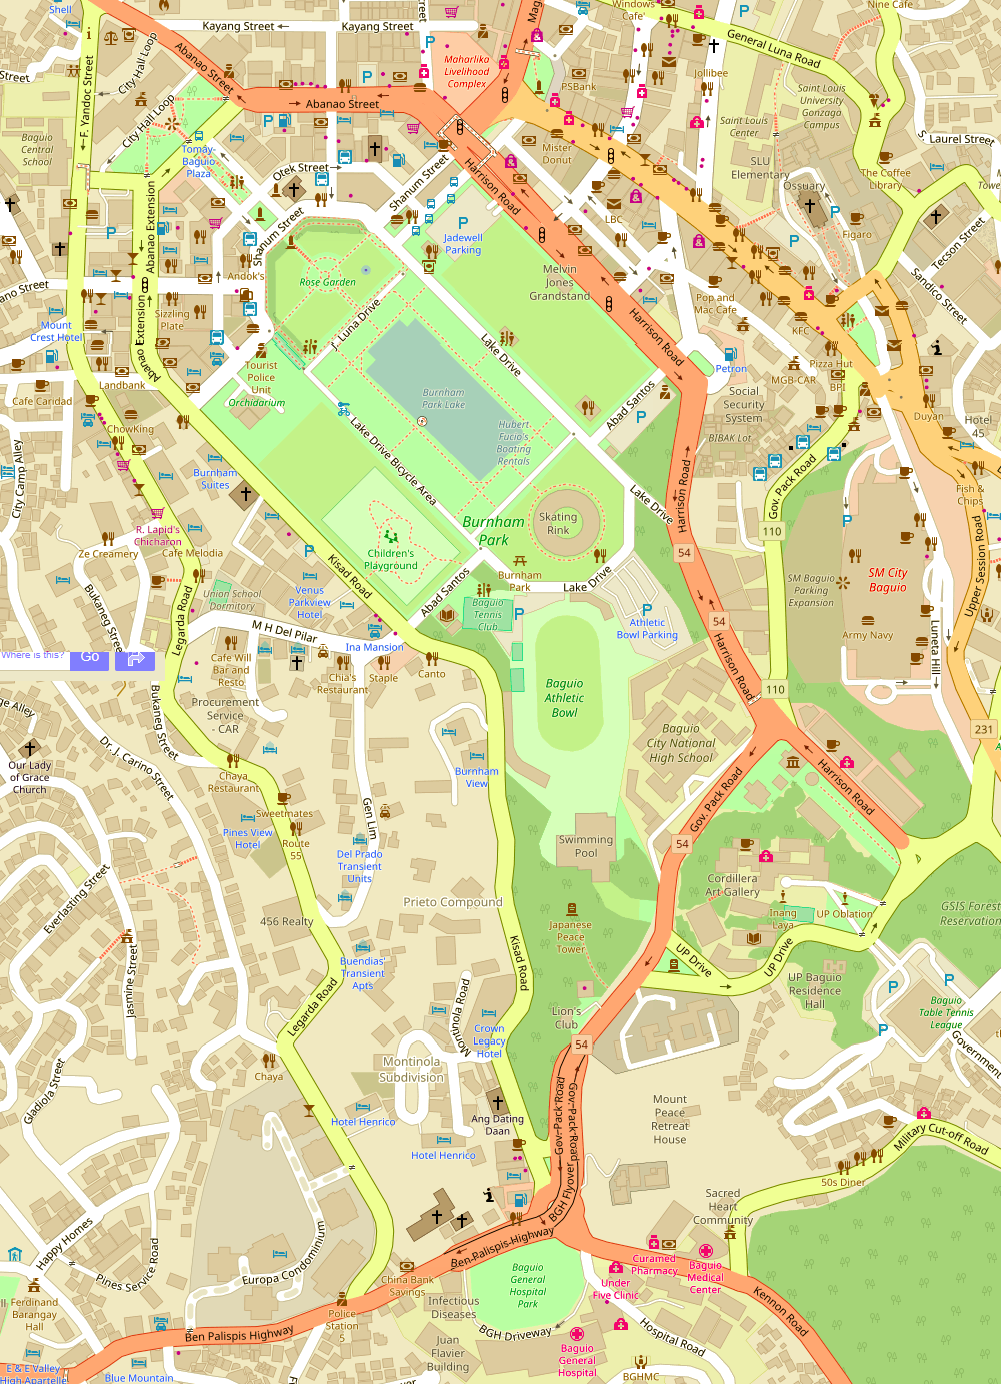 Burnham Park Map File:Baguio Burnham Park Open Street Map.png   Wikimedia Commons